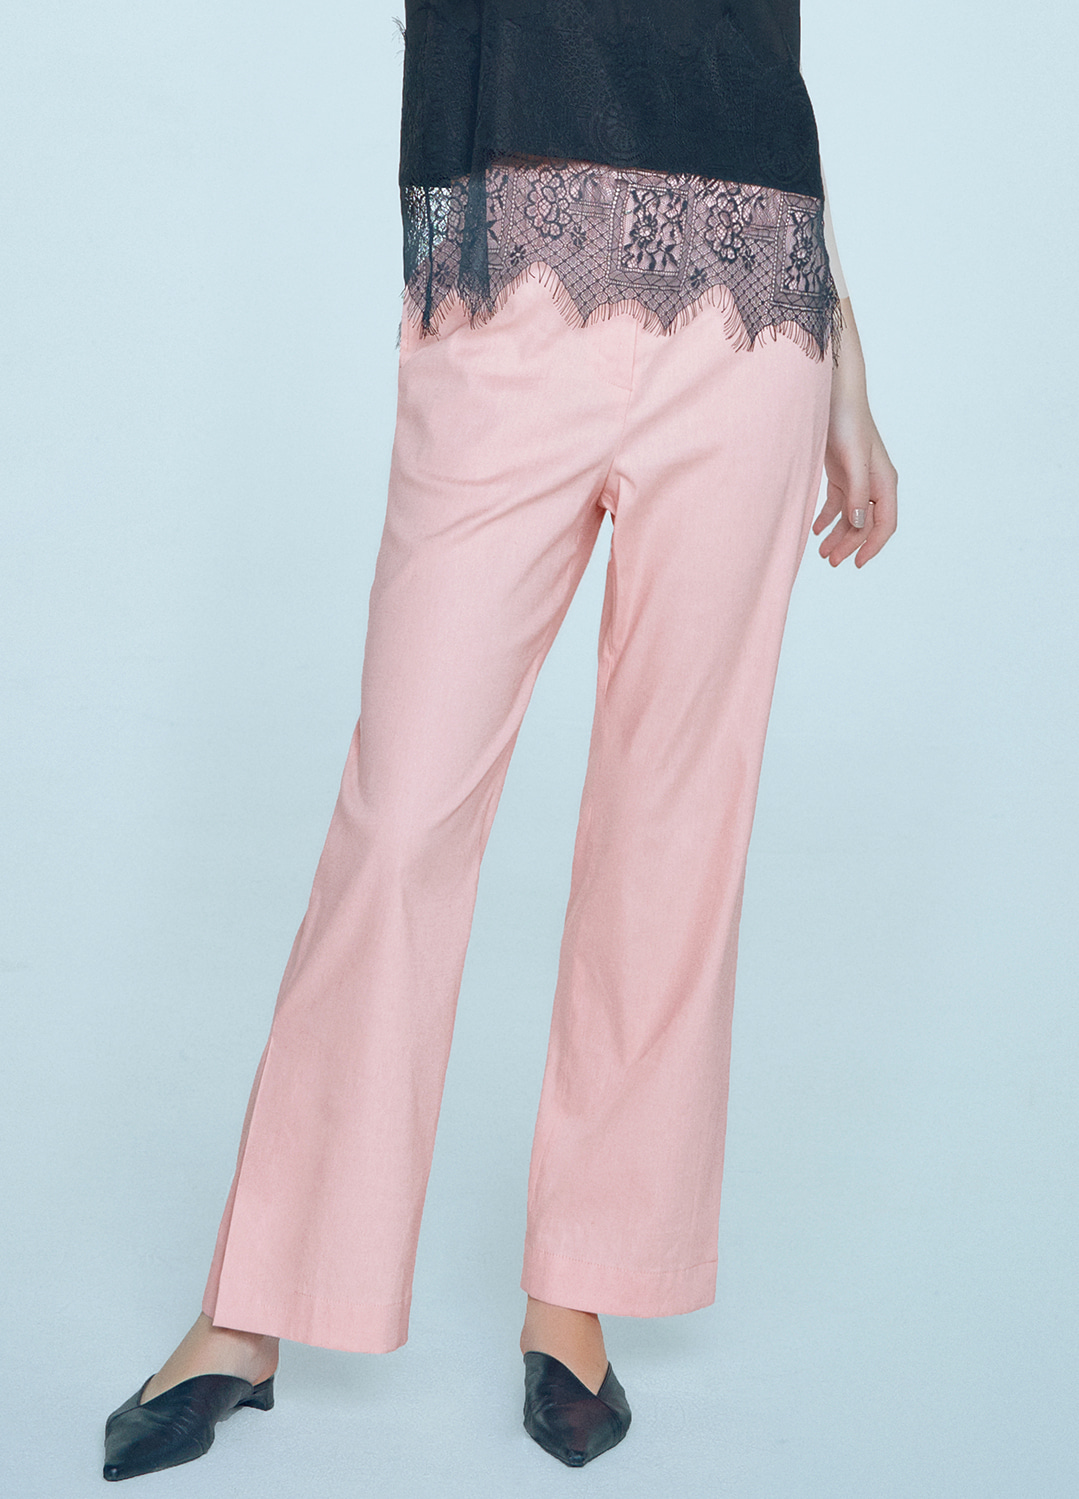 high waist wide pants Pink 30%